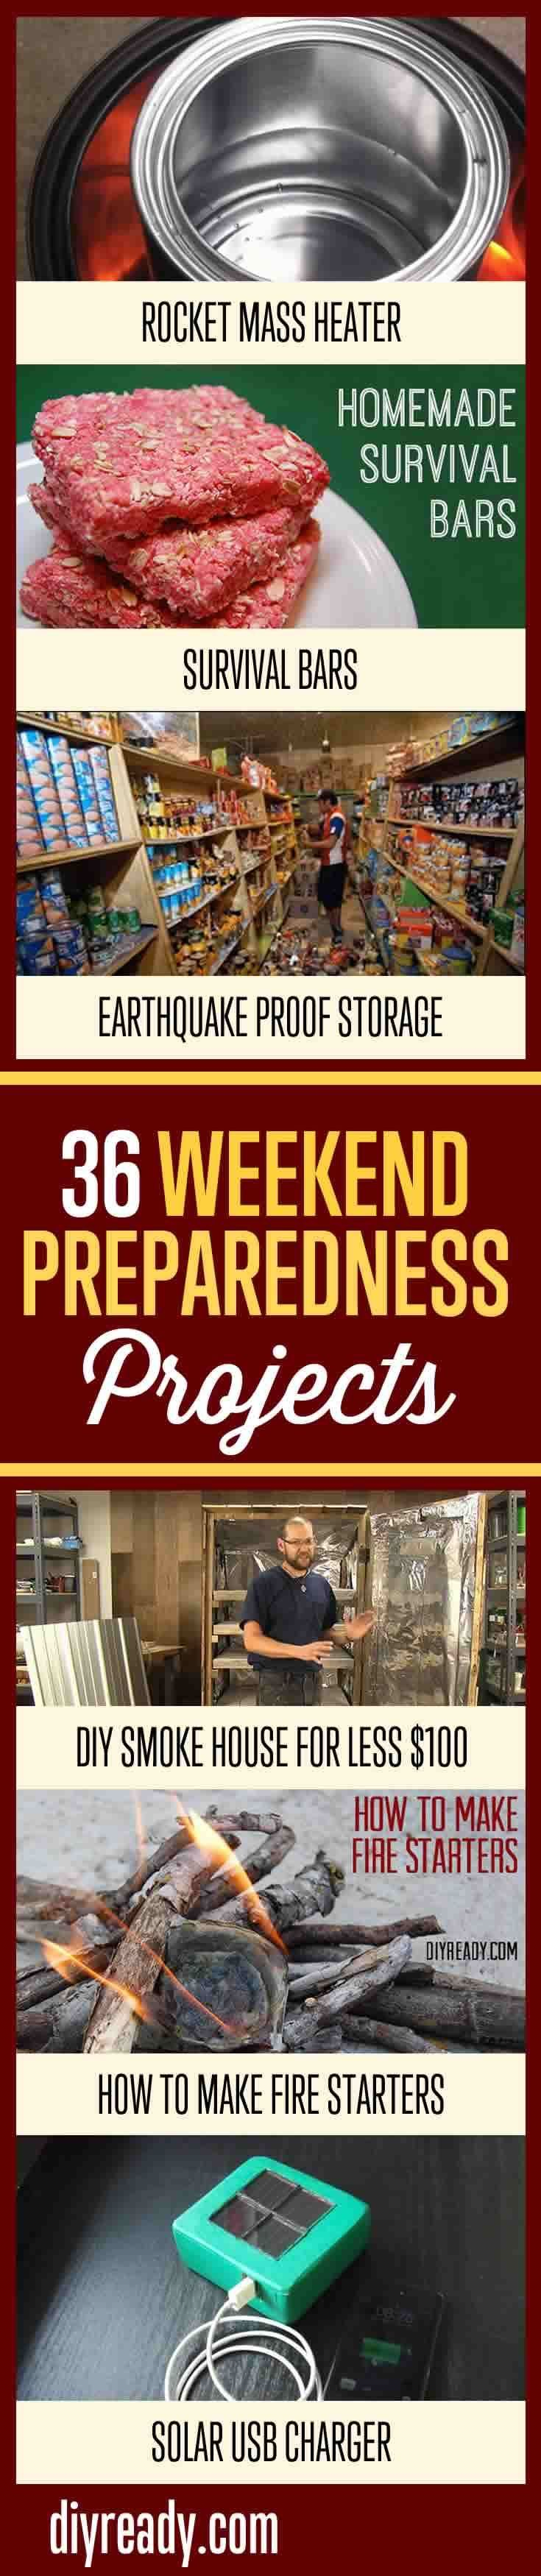 36 Weekend Preparedness Projects For Preppers | Emergency Survival Outdoor DIY Projects By DIY Ready. http://diyready.com/36-weekend-projects-for-preparedness-and-survival/